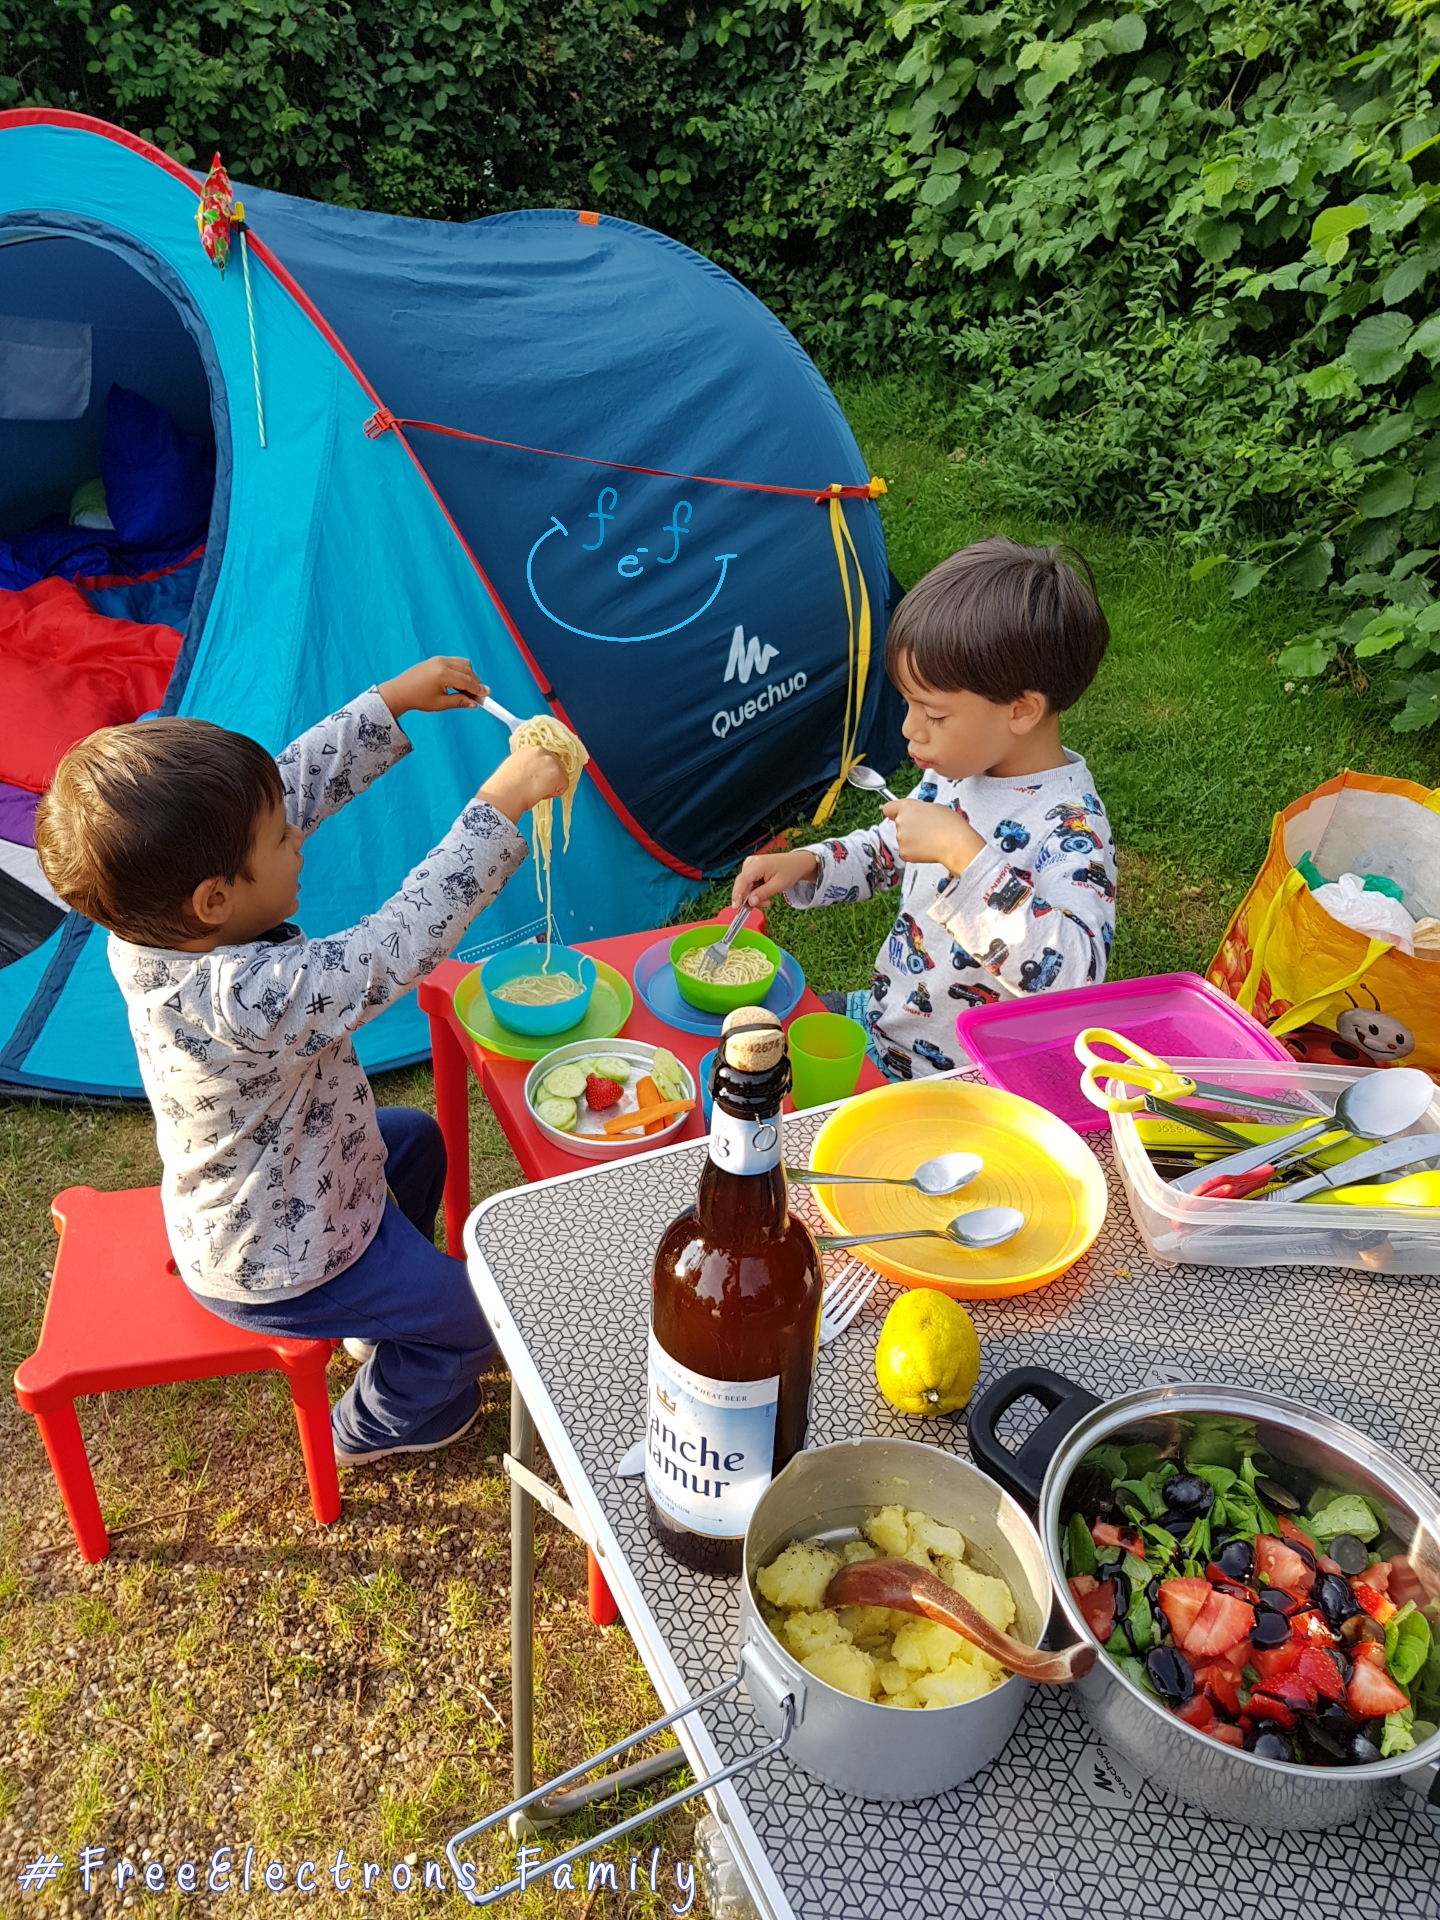 #FreeElectrons.Family - camping road trip Europe 2 eating well